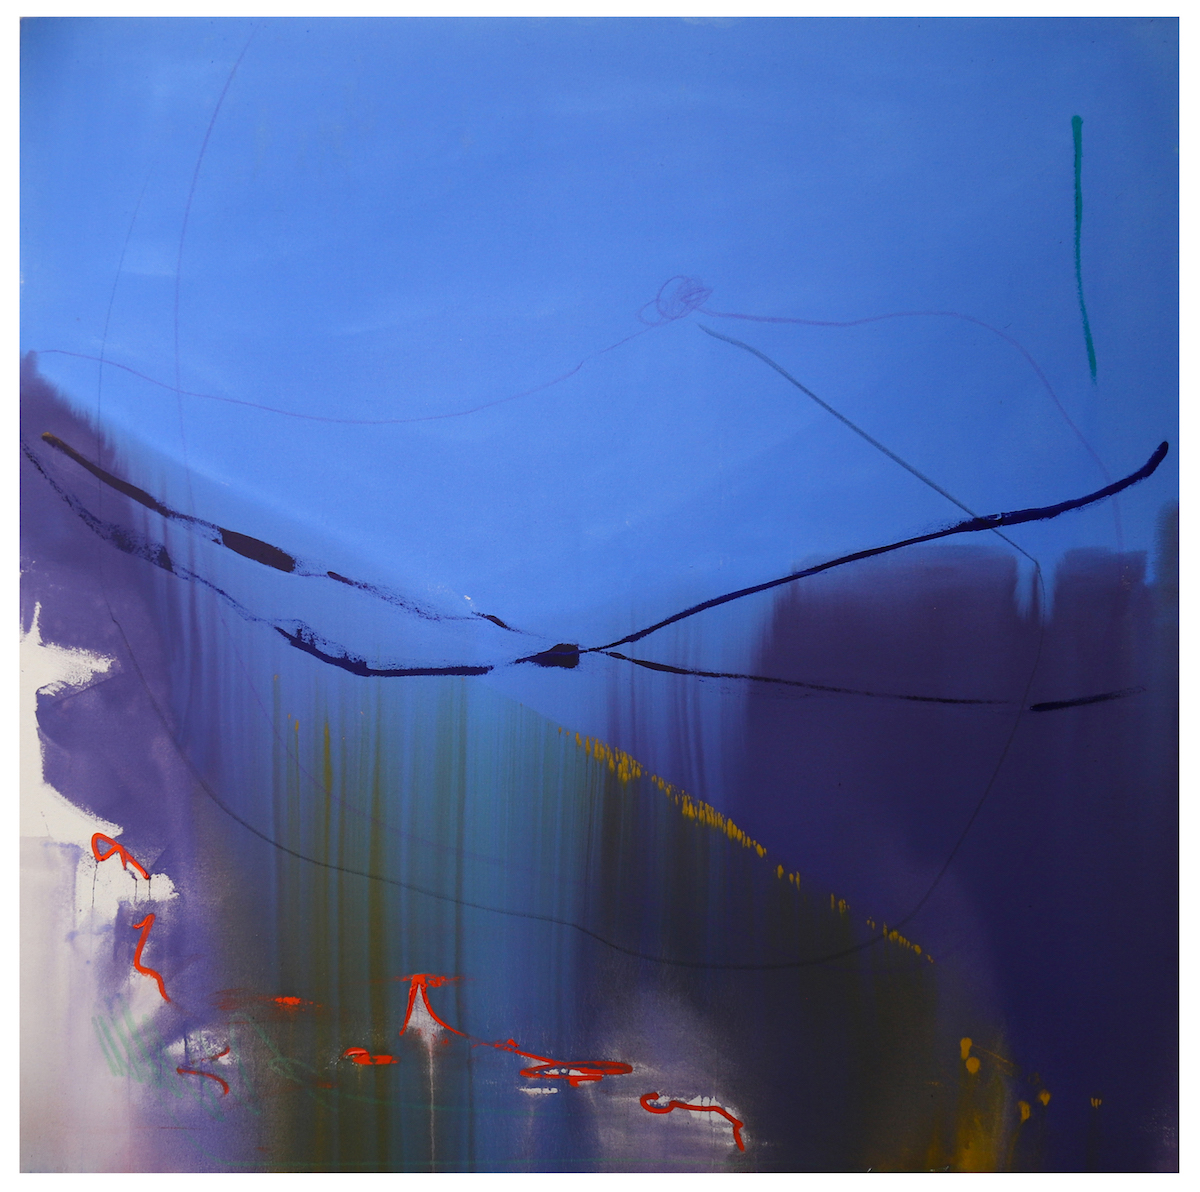 Crystal Fischetti, Light'n the Darkness, 2020. Courtesy of the artist and Grove Square Galleries